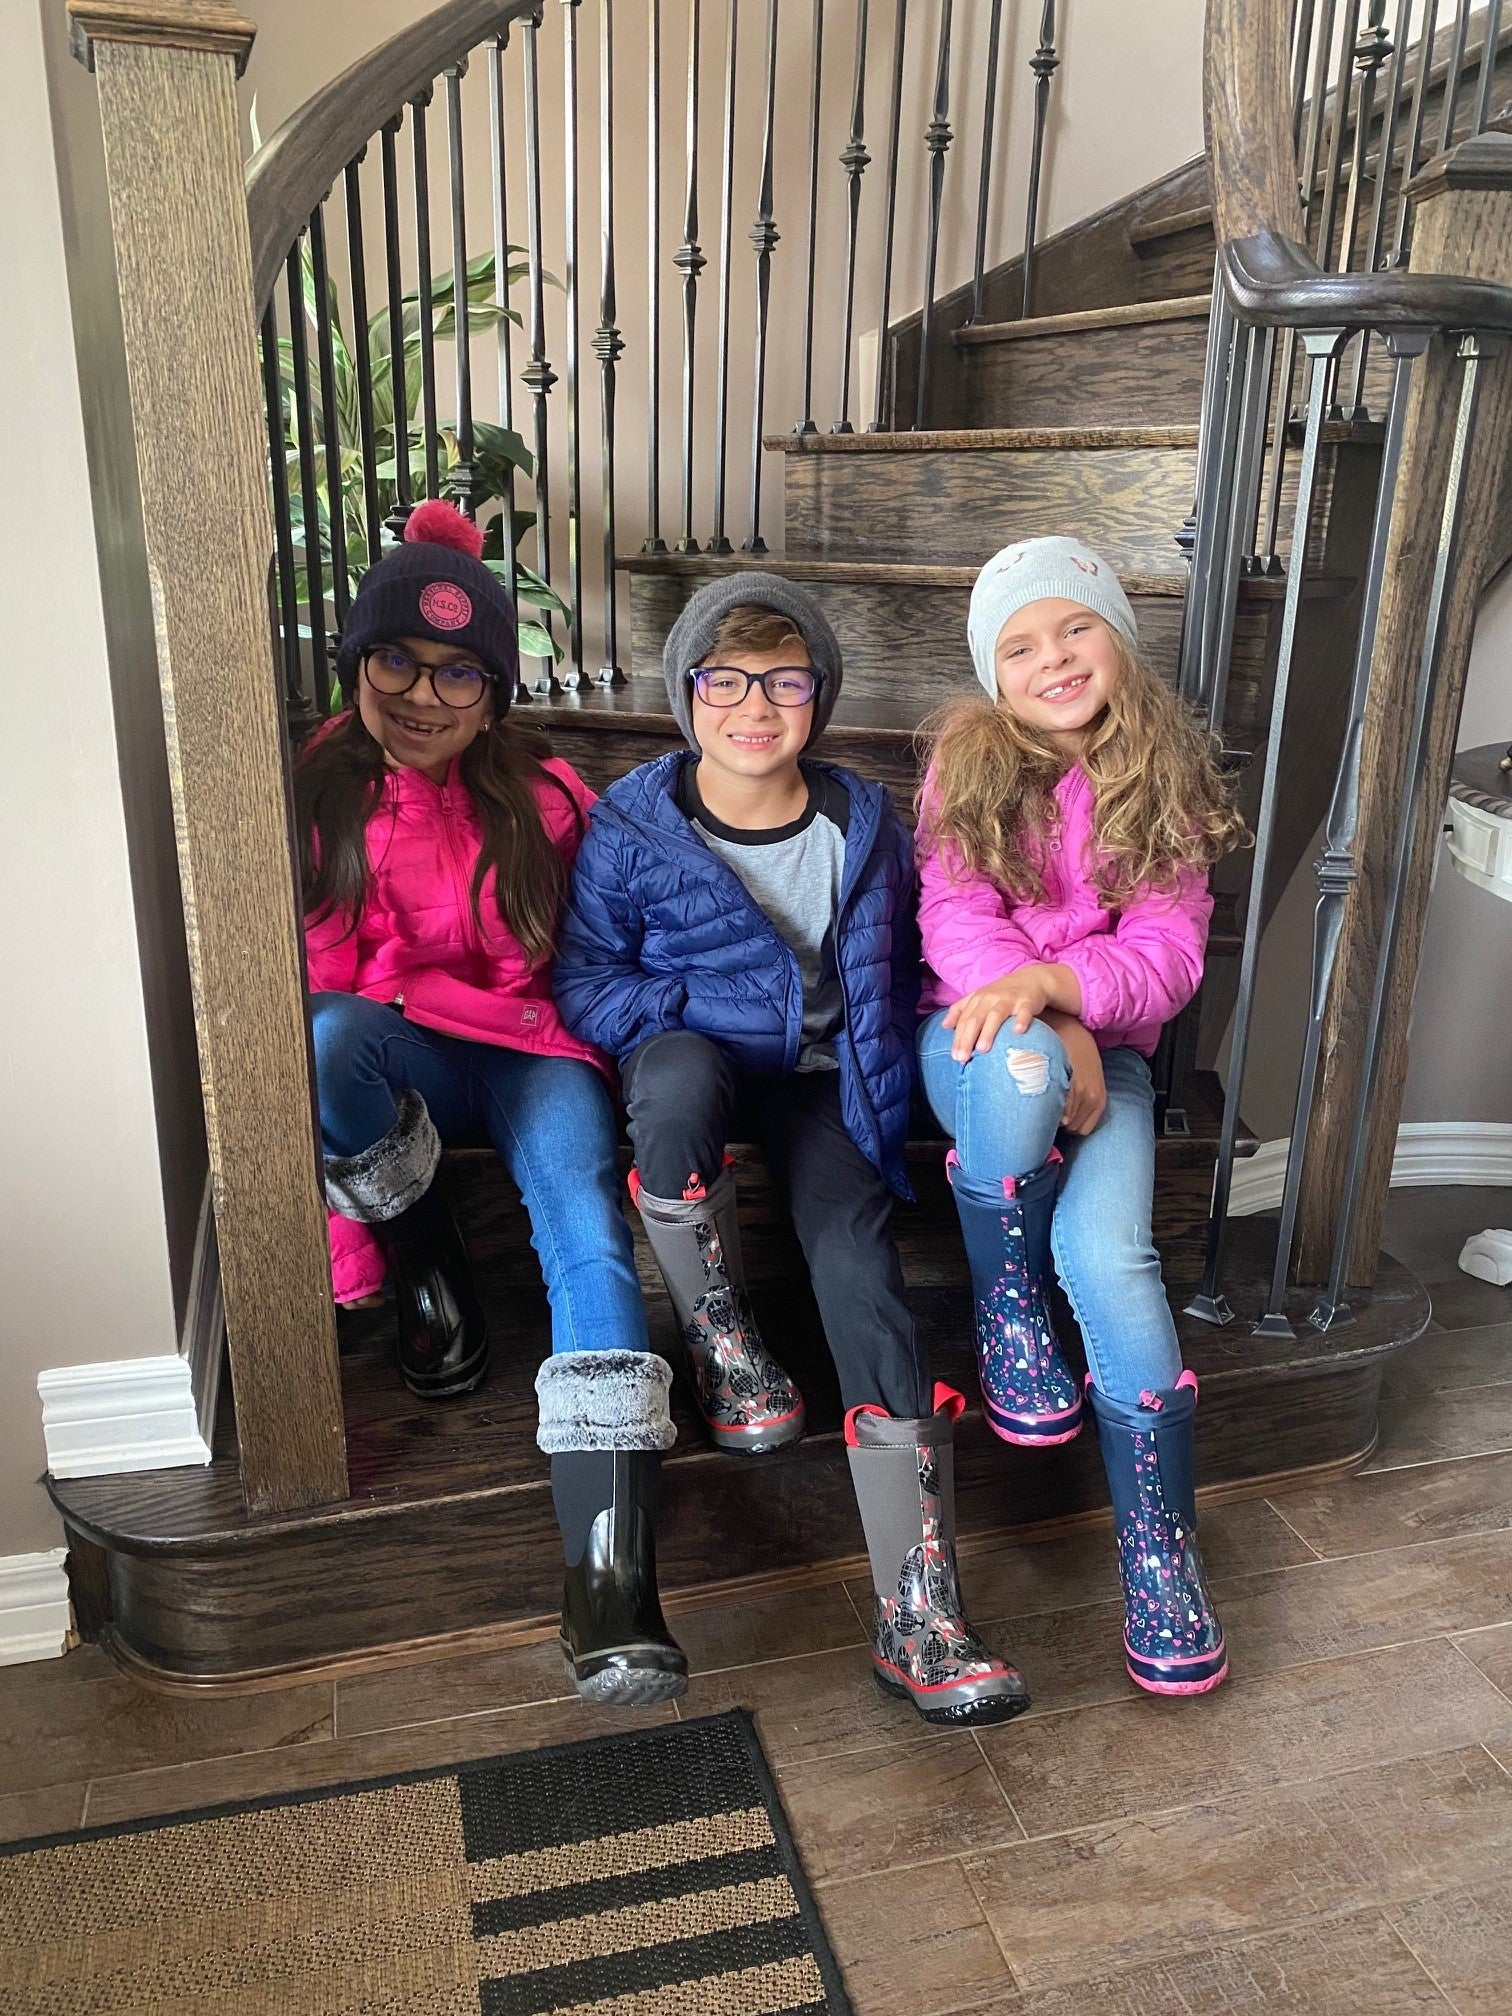 Abigail, Adrian and Madeline ready to head outside in their Neoprene's!